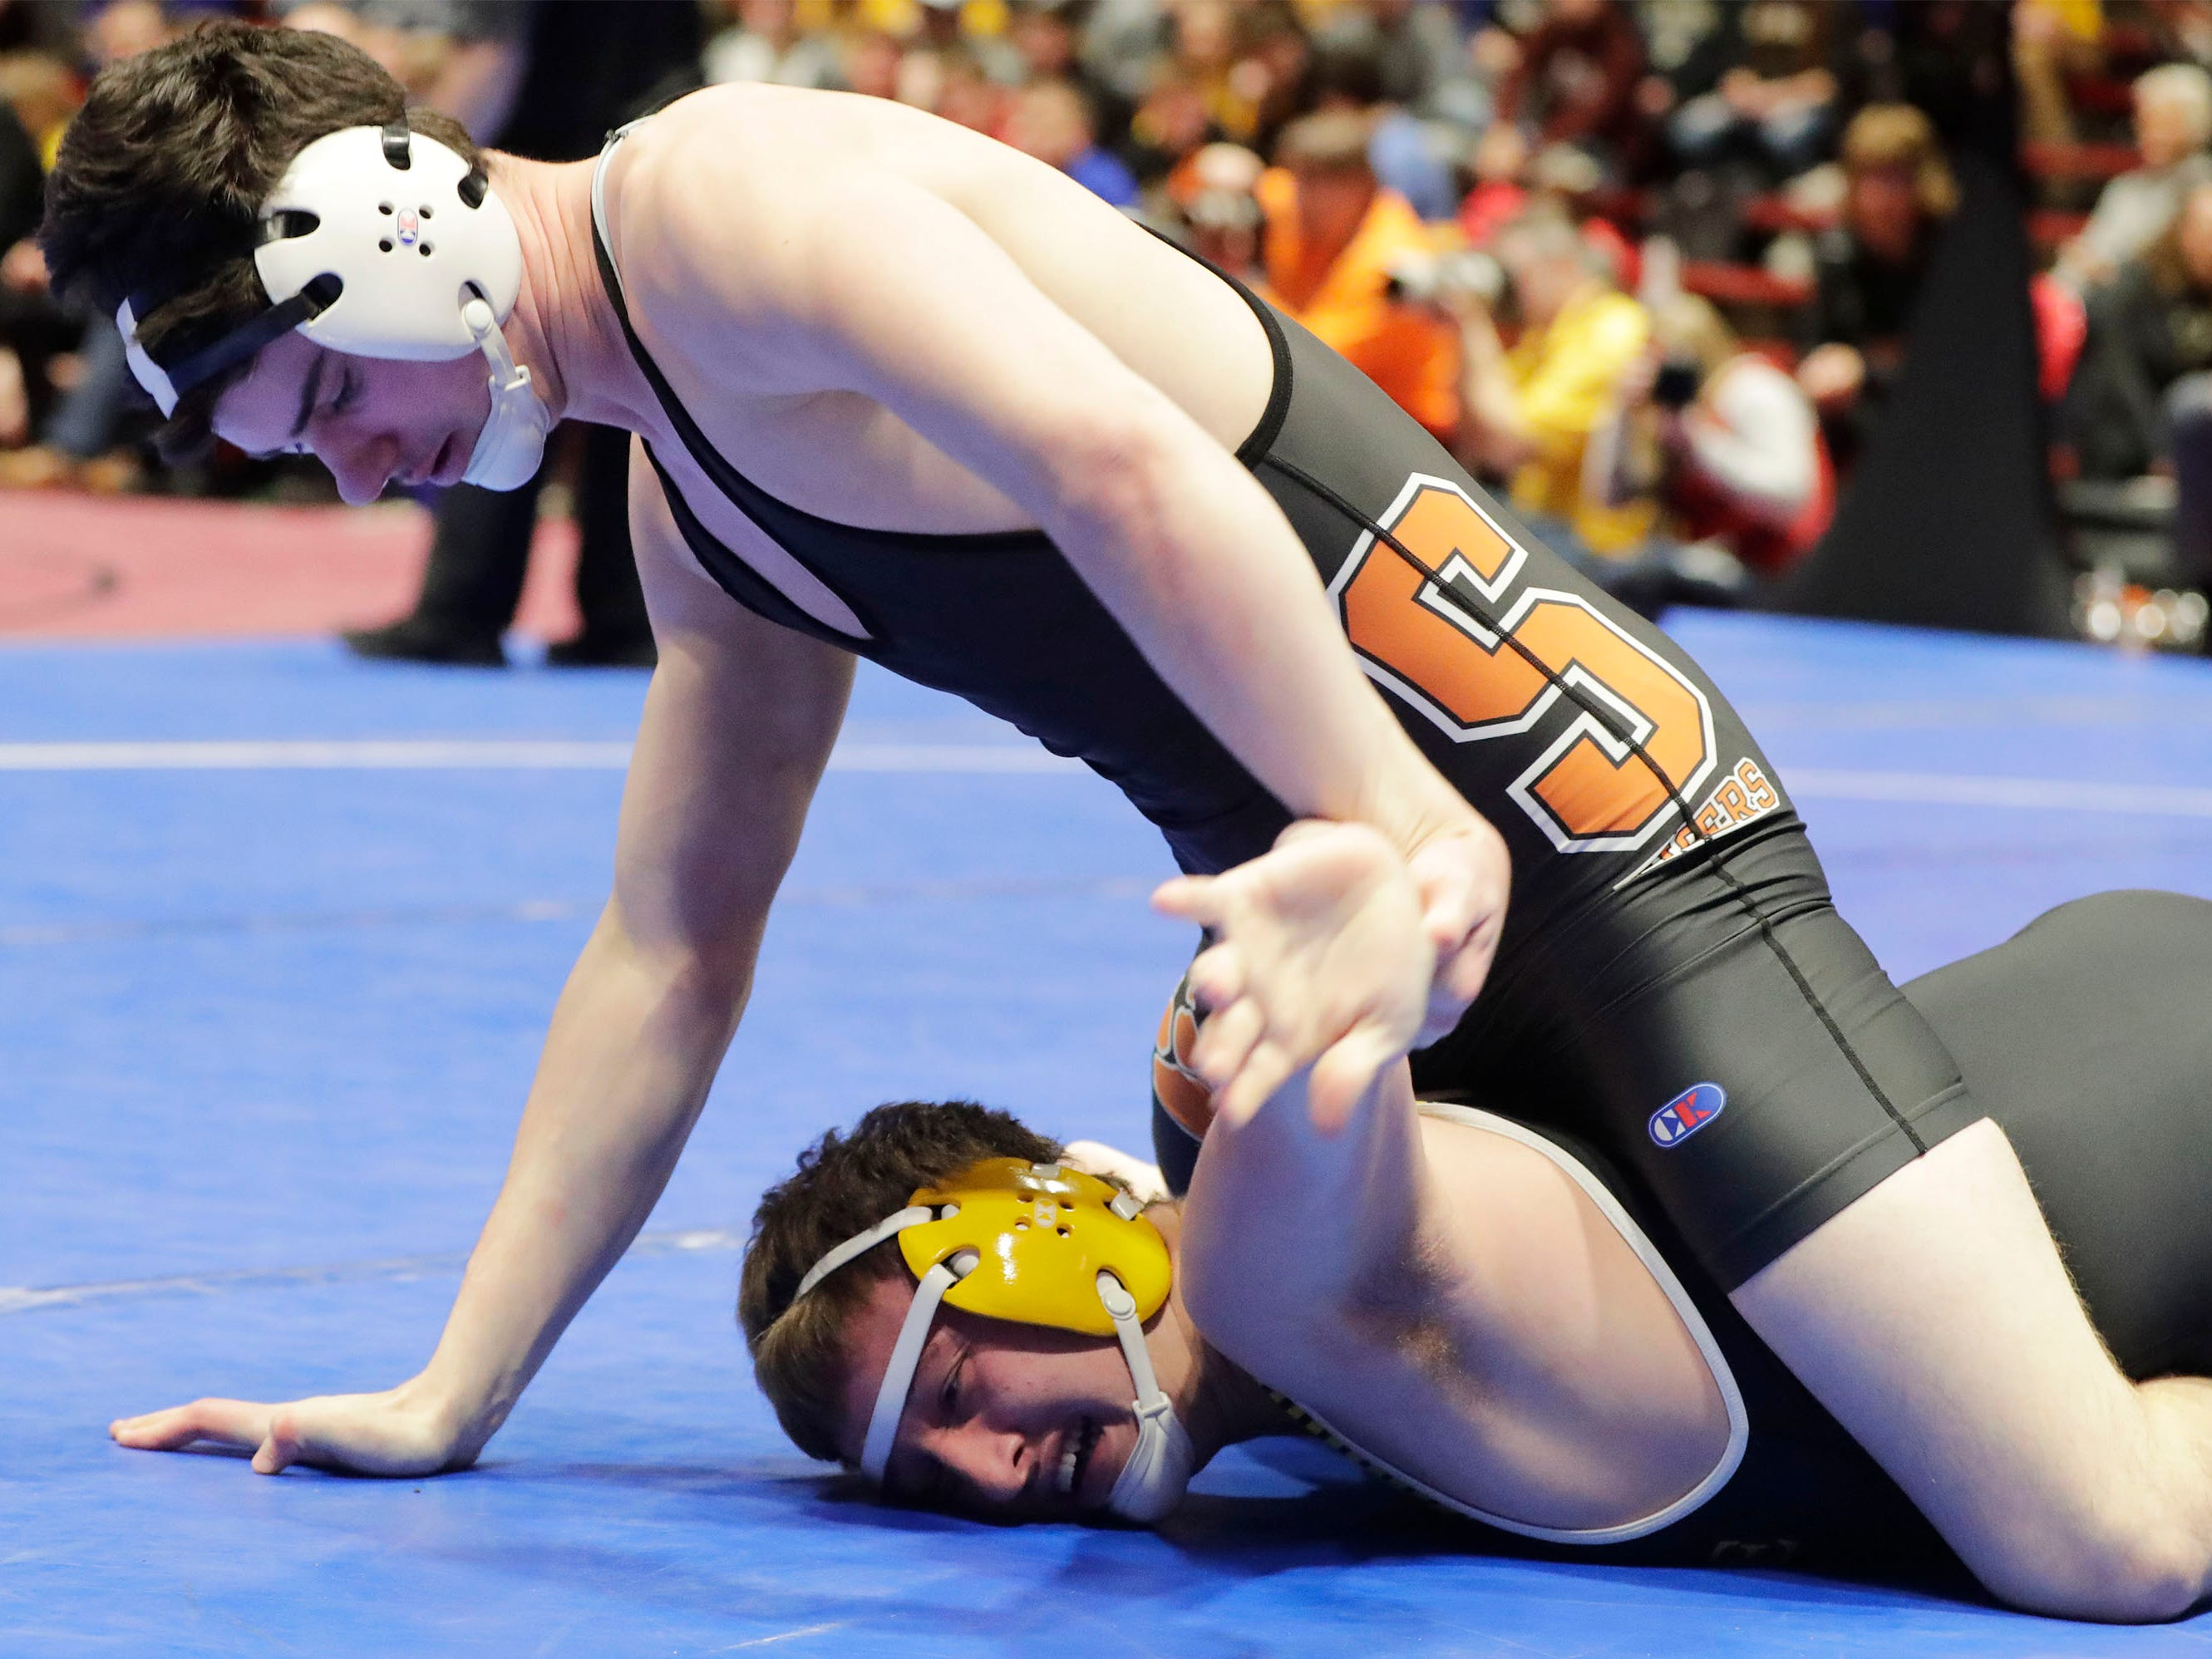 Stratford's Jediah Knetter, top, wrestles Fennimore's Logan Klass in the 195-pound class, Saturday, March 2, 2019, in Madison, Wis.